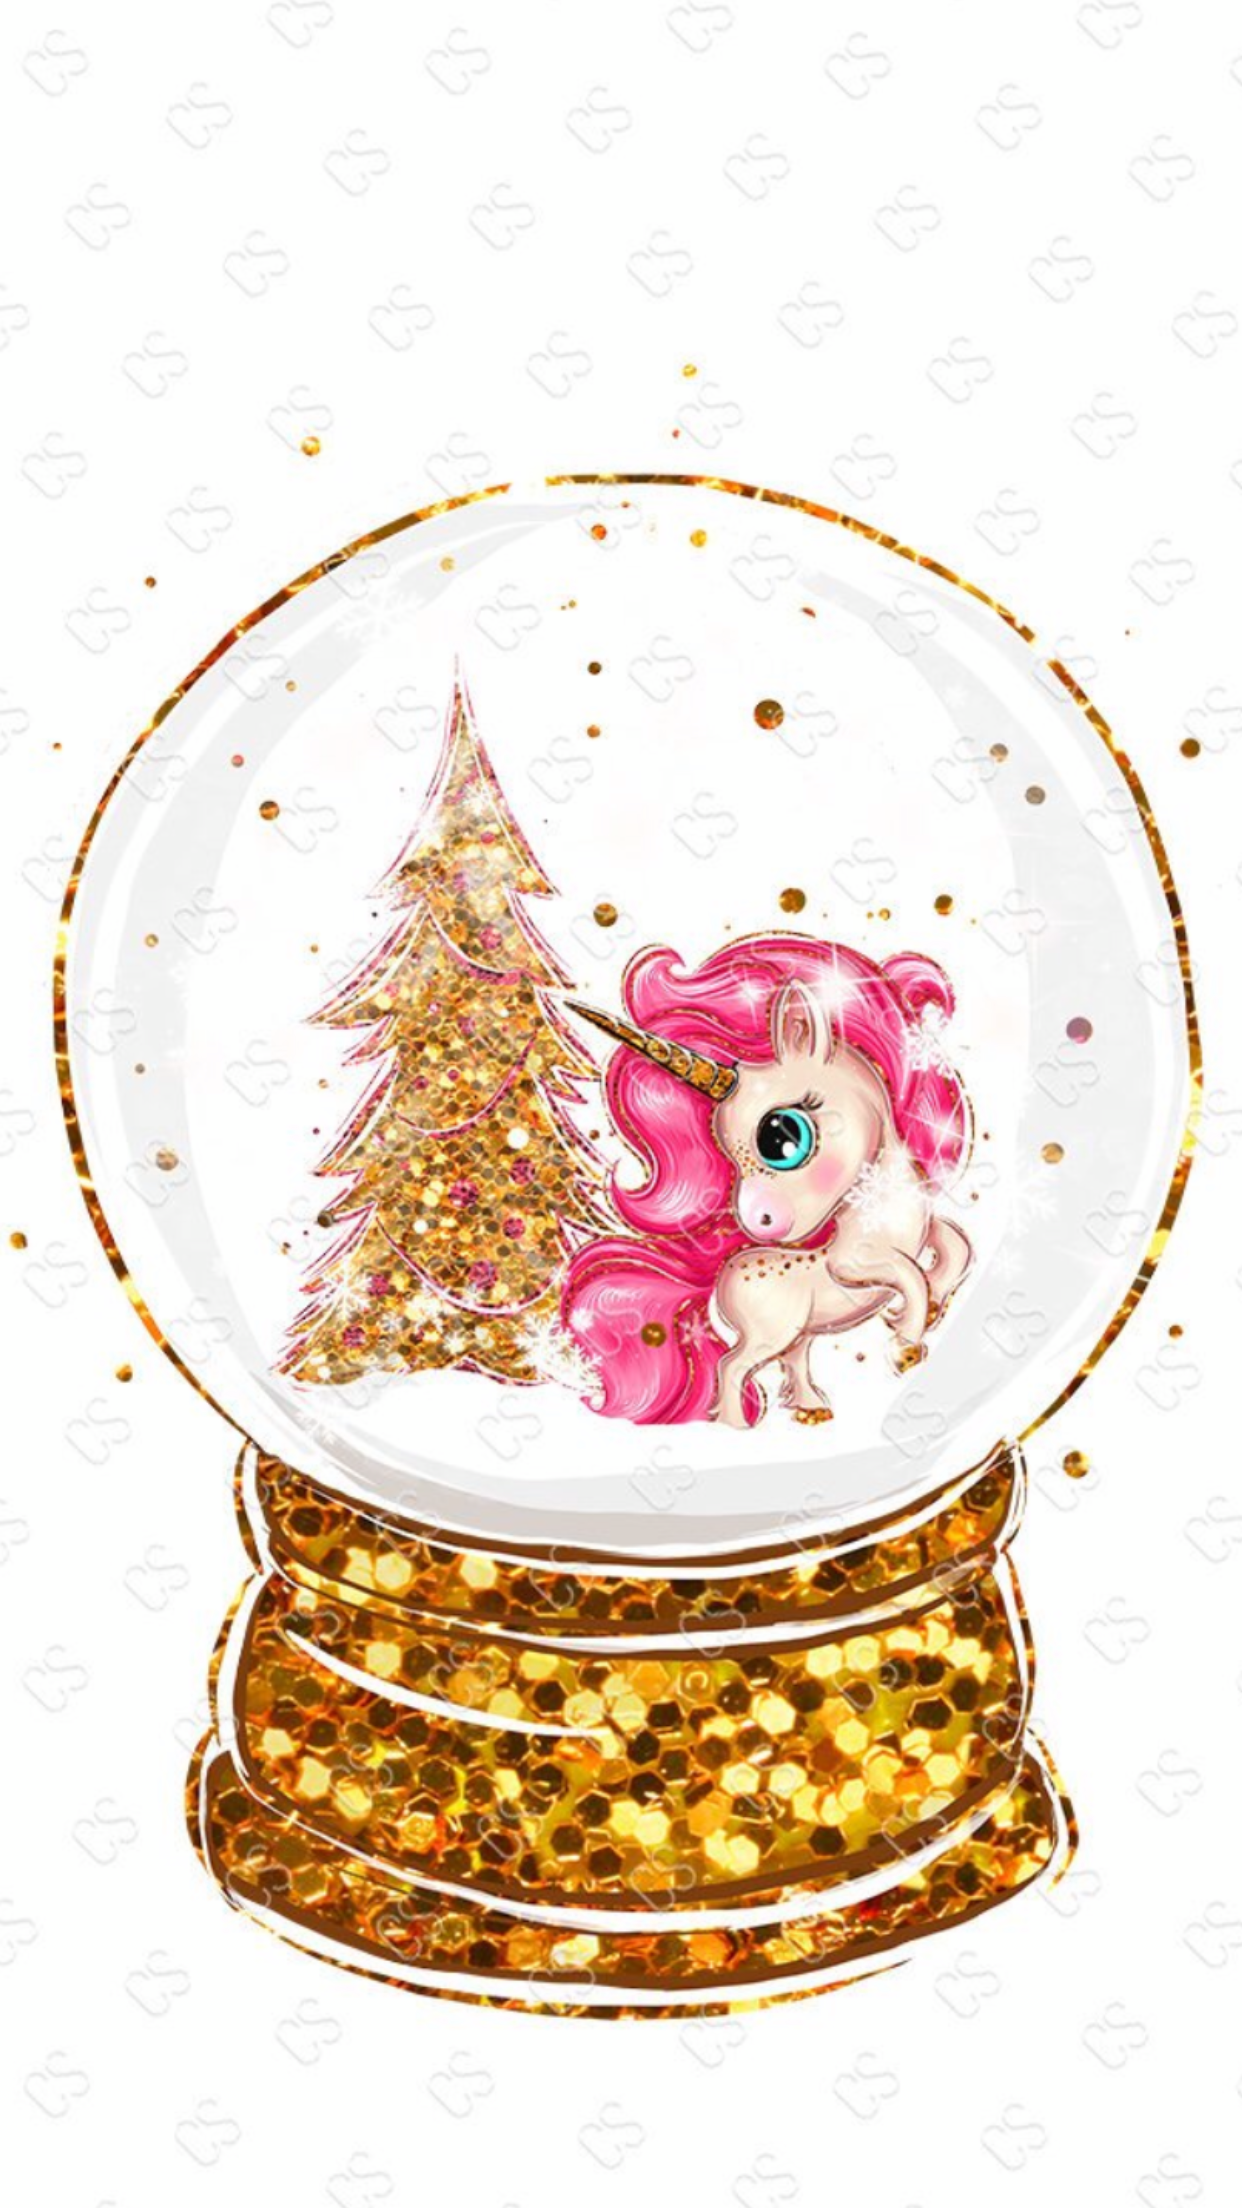 Wallpaper By Artist Unknown Cute Christmas Wallpaper Unicorn Wallpaper Pretty Wallpapers